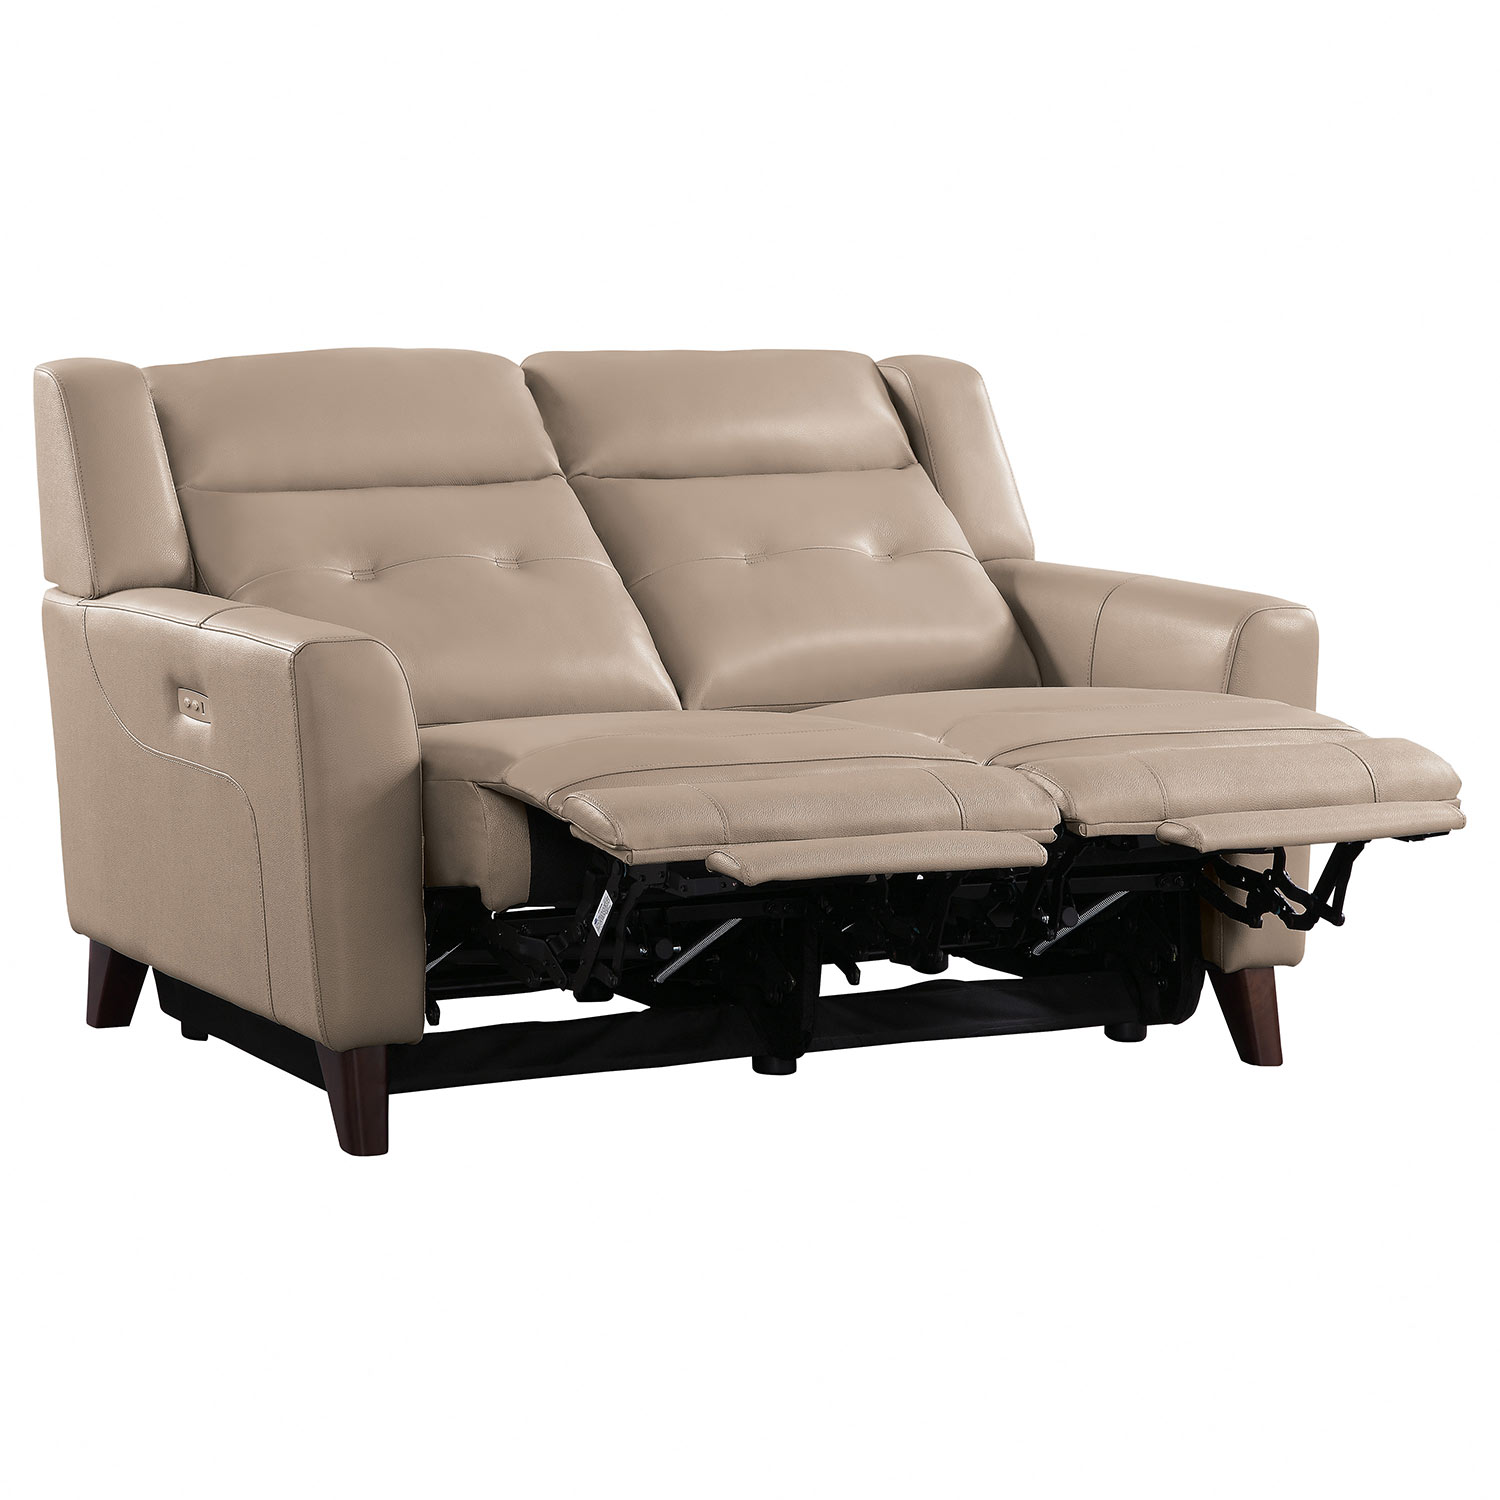 Homelegance Wystan Power Double Reclining Love Seat - Beige